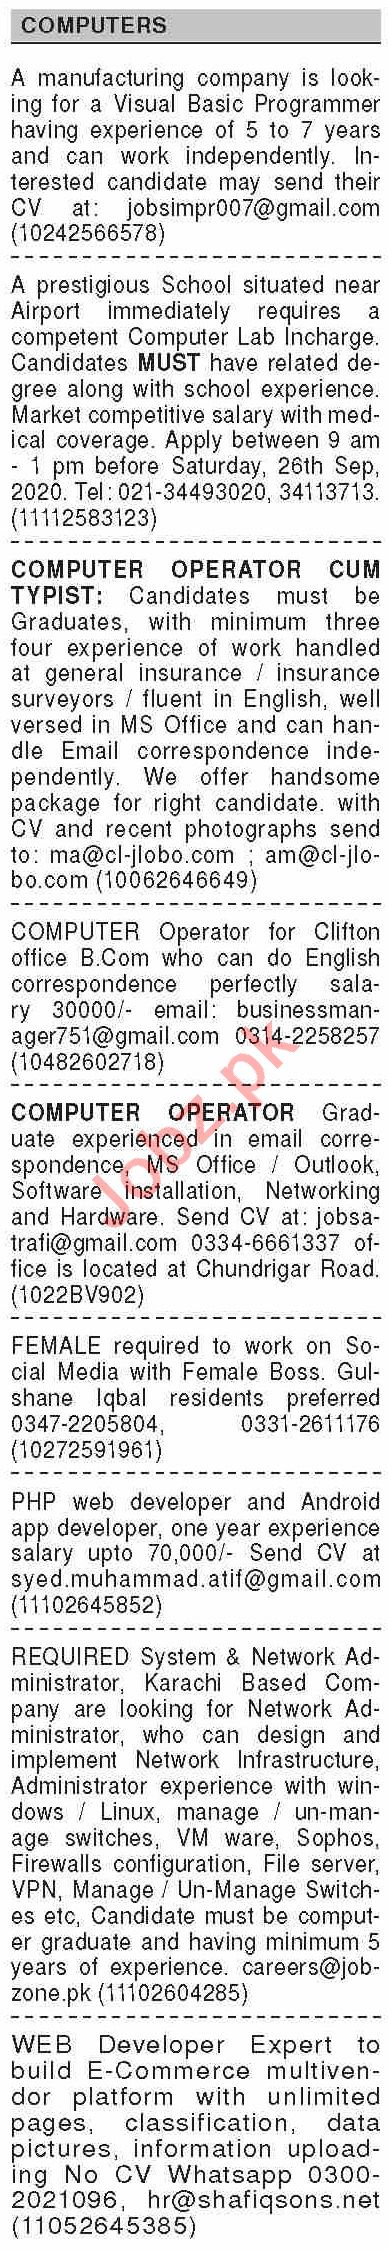 Dawn Sunday Classified Ads 20 Sept 2020 for Computer Staff